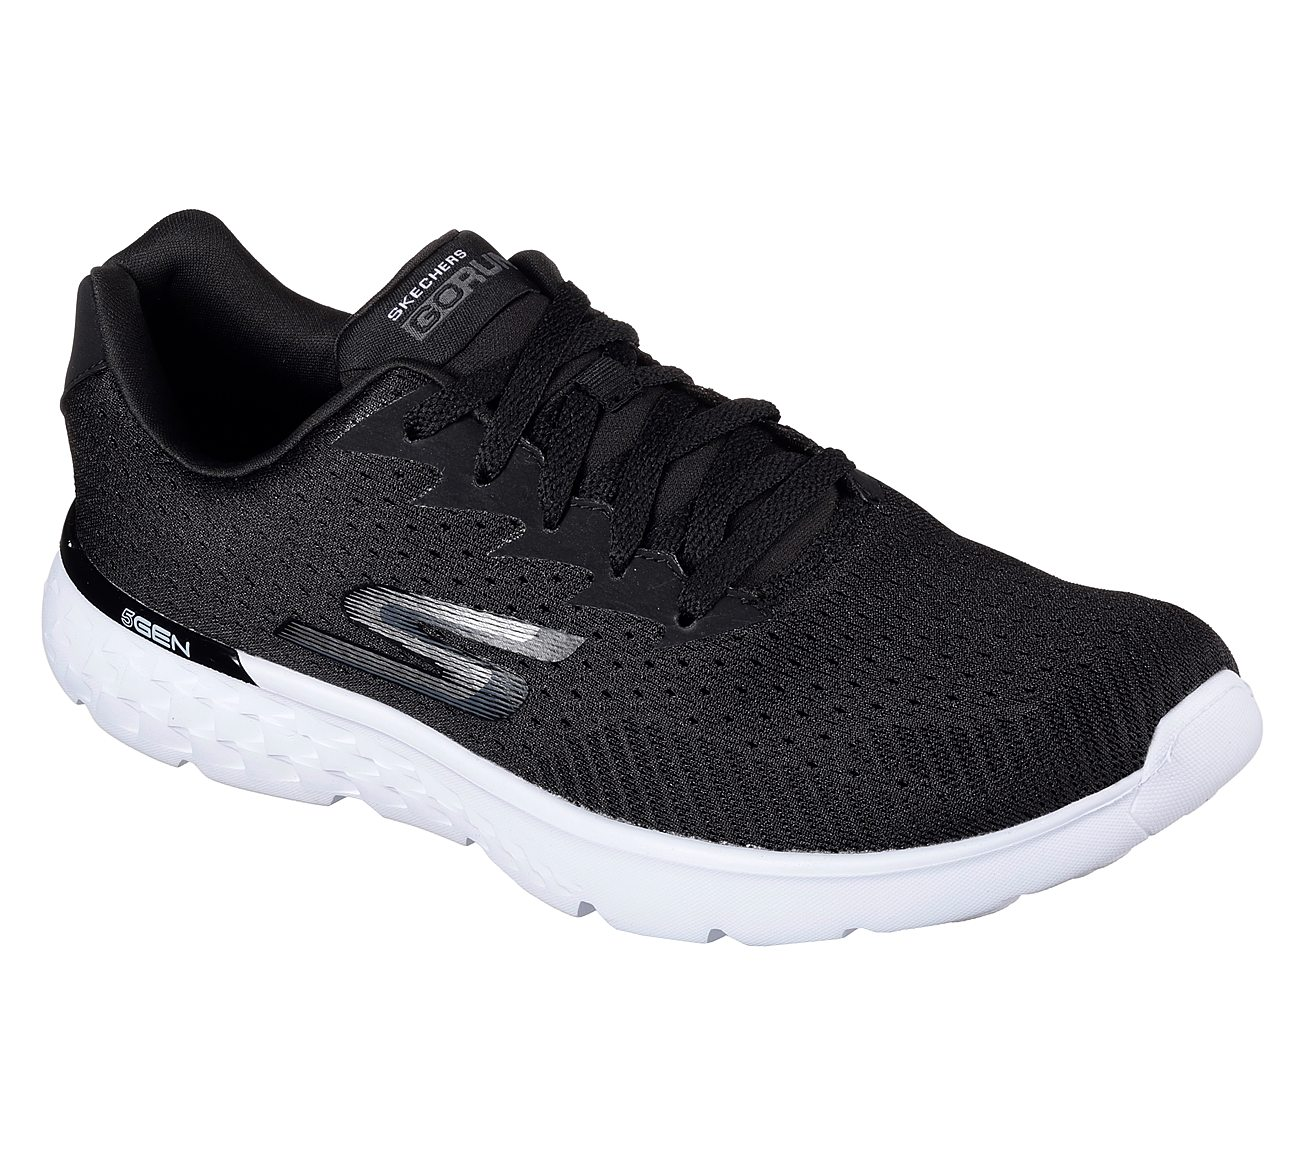 563dfc1ca4b Exclusive SKECHERS Homens shoes - SKECHERS Brasil